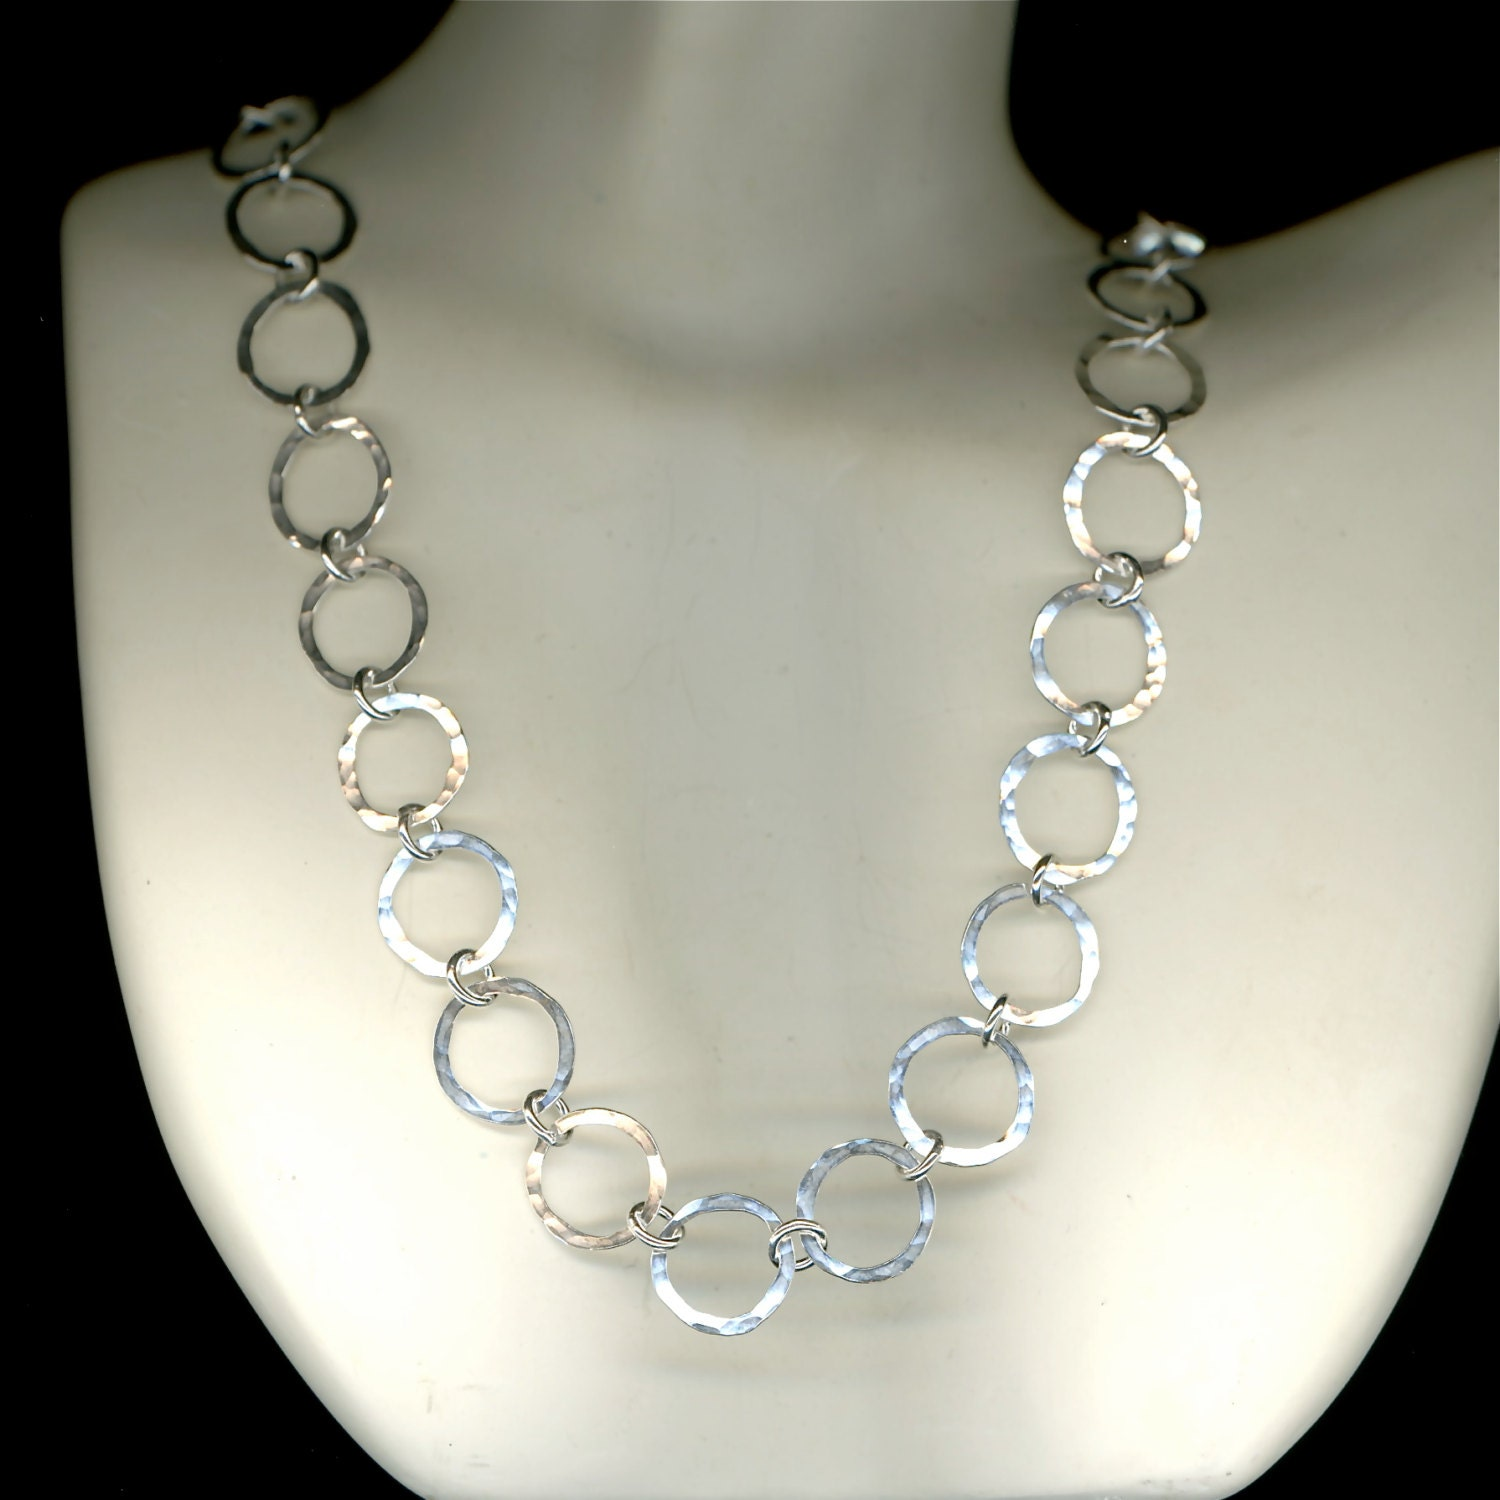 Hammered Circle Necklace Large Link Wire Silver Chain Necklace